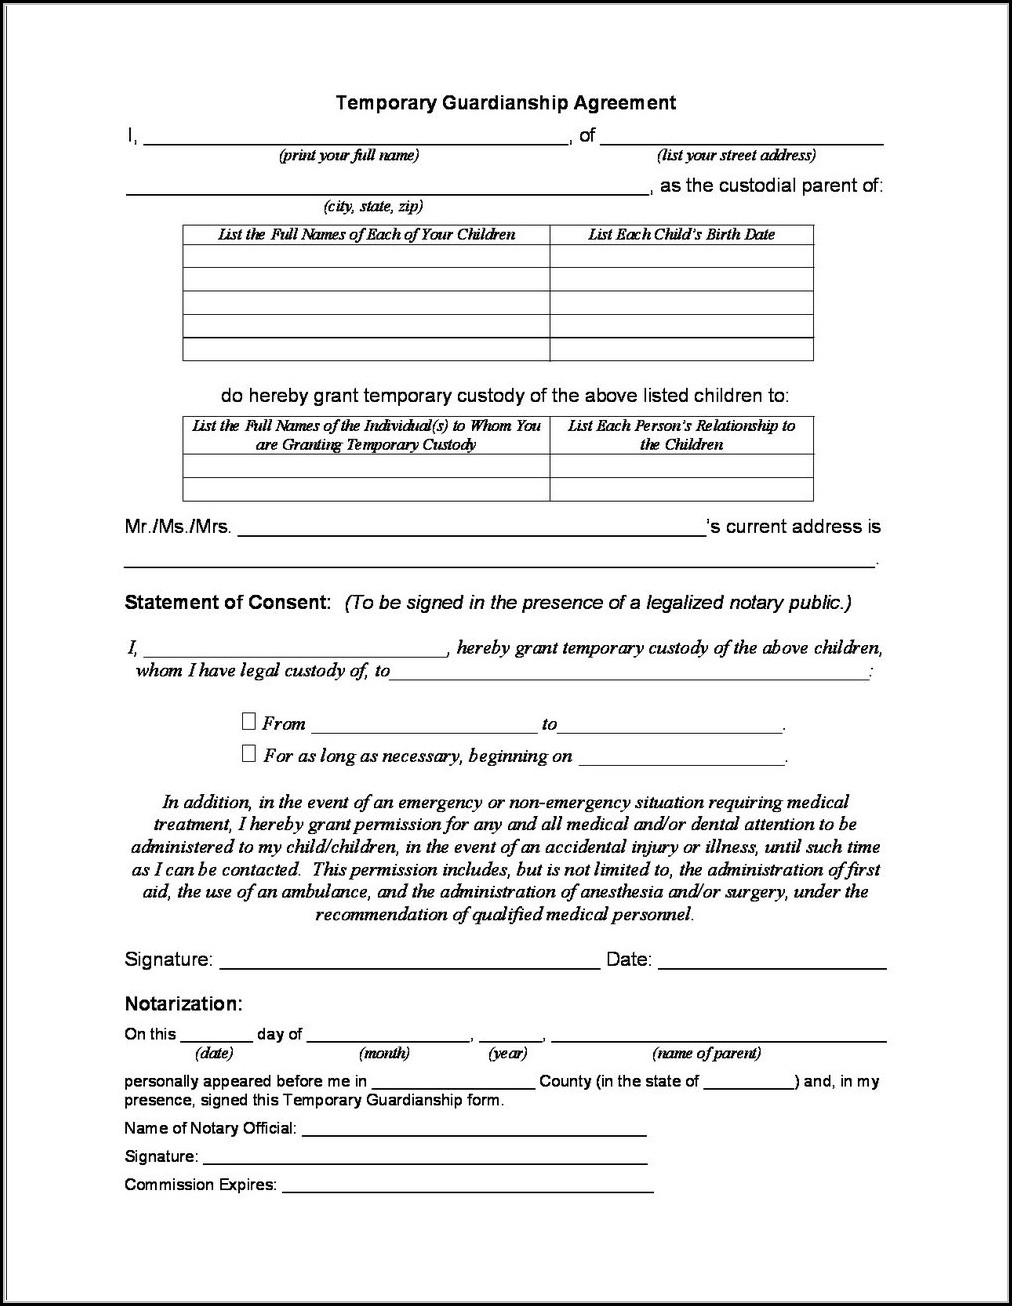 photo regarding Indiana Printable Guardianship Papers called Non permanent Guardianship Kinds Indiana - Type : Resume